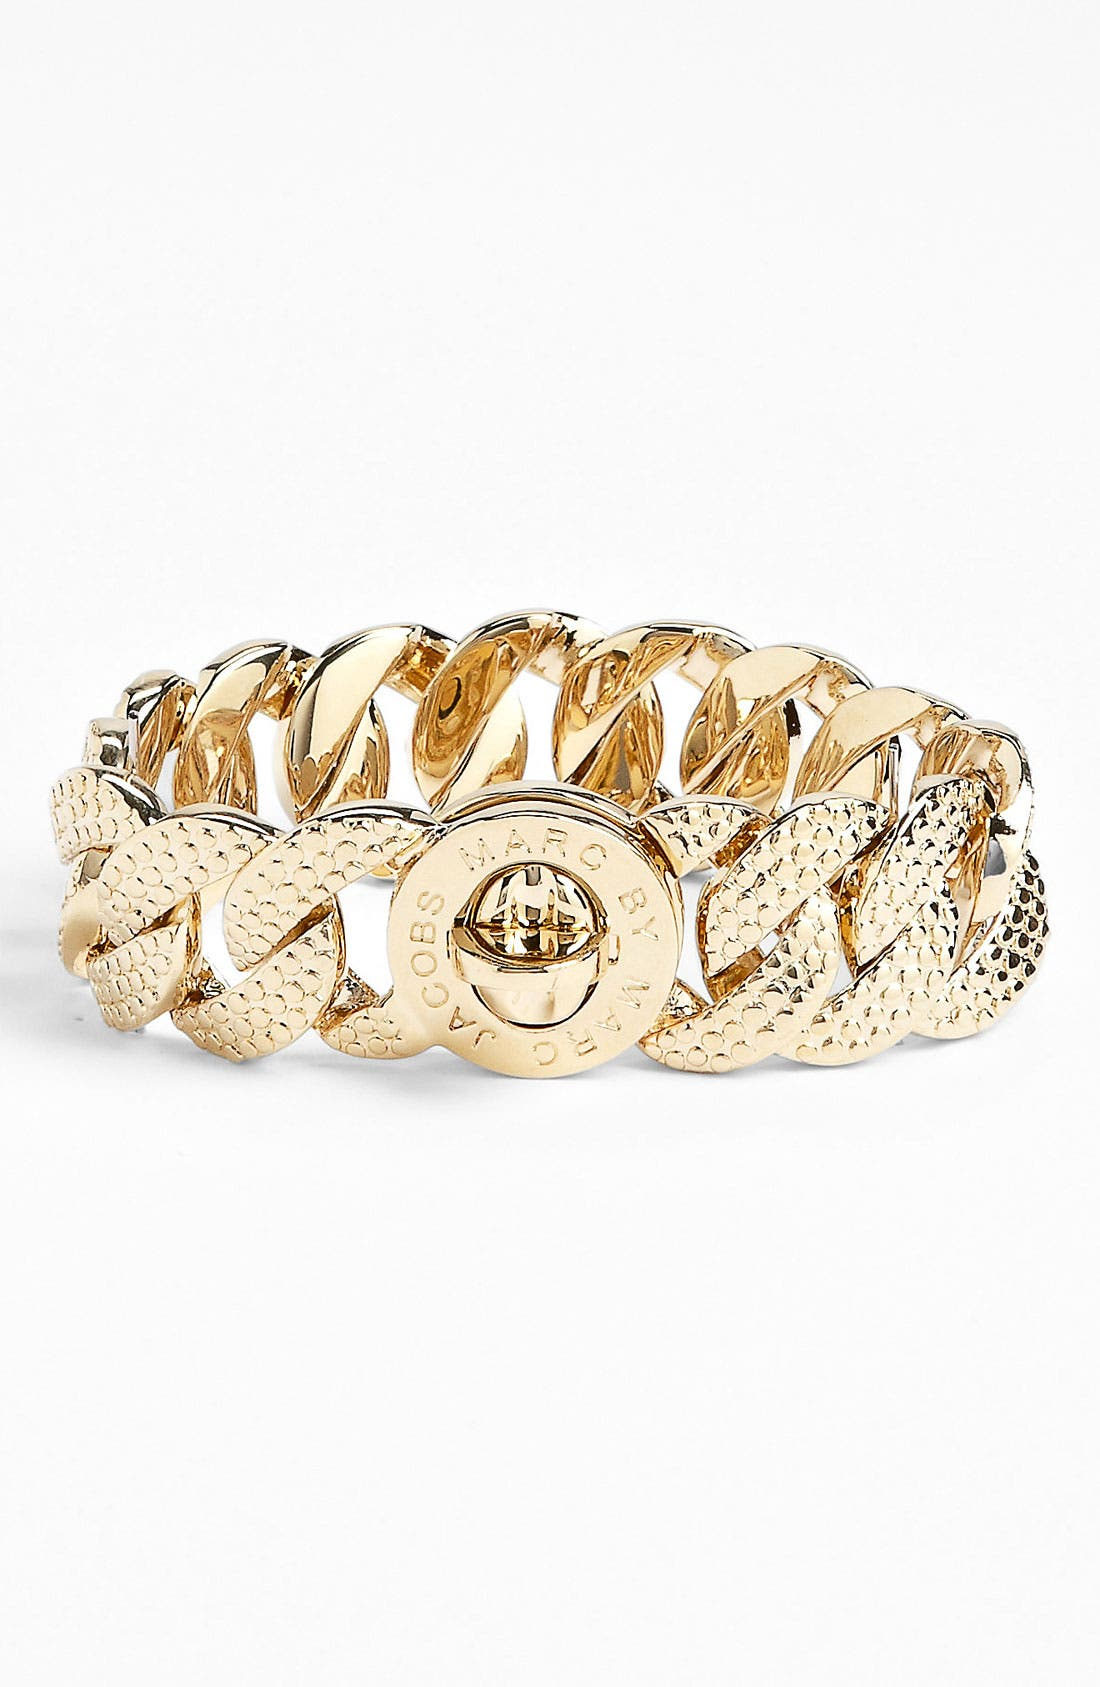 Main Image - MARC BY MARC JACOBS 'Turnlock - Katie Lizard' Large Bracelet